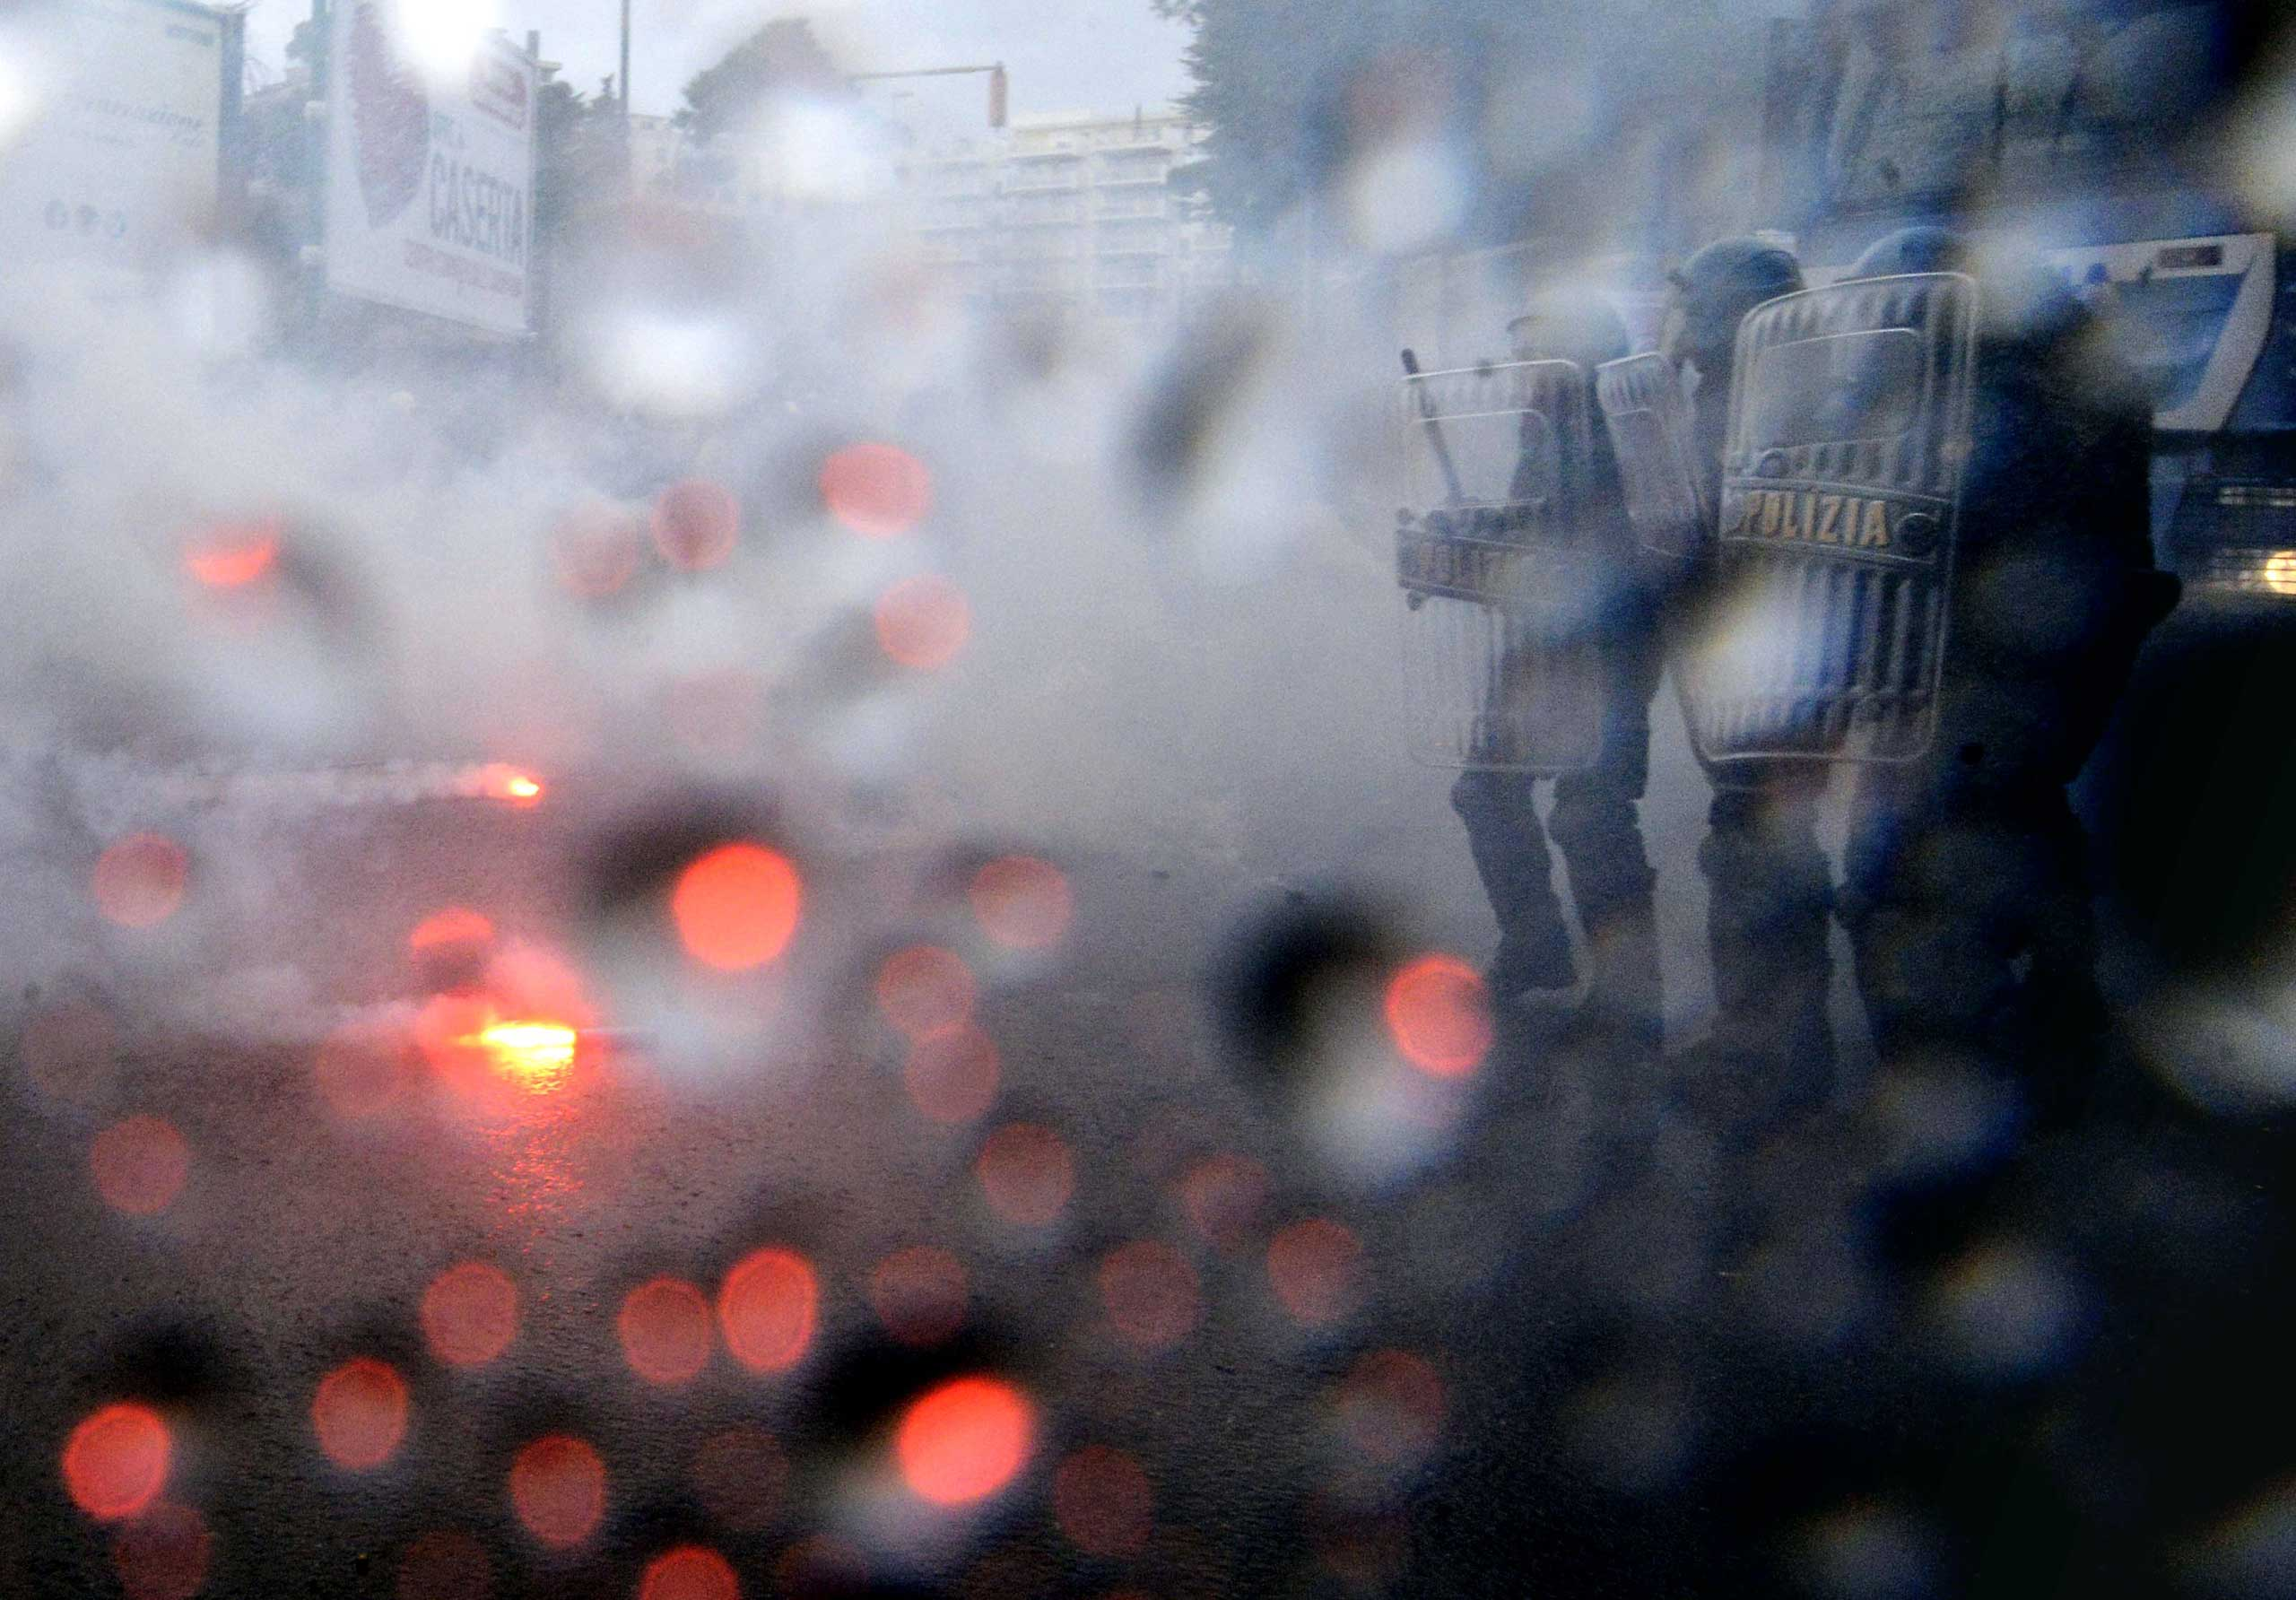 Oct. 2, 2014. Demonstrators, targeted by water cannons, throw flares at police as the ECB governing council meets in Naples, Italy.